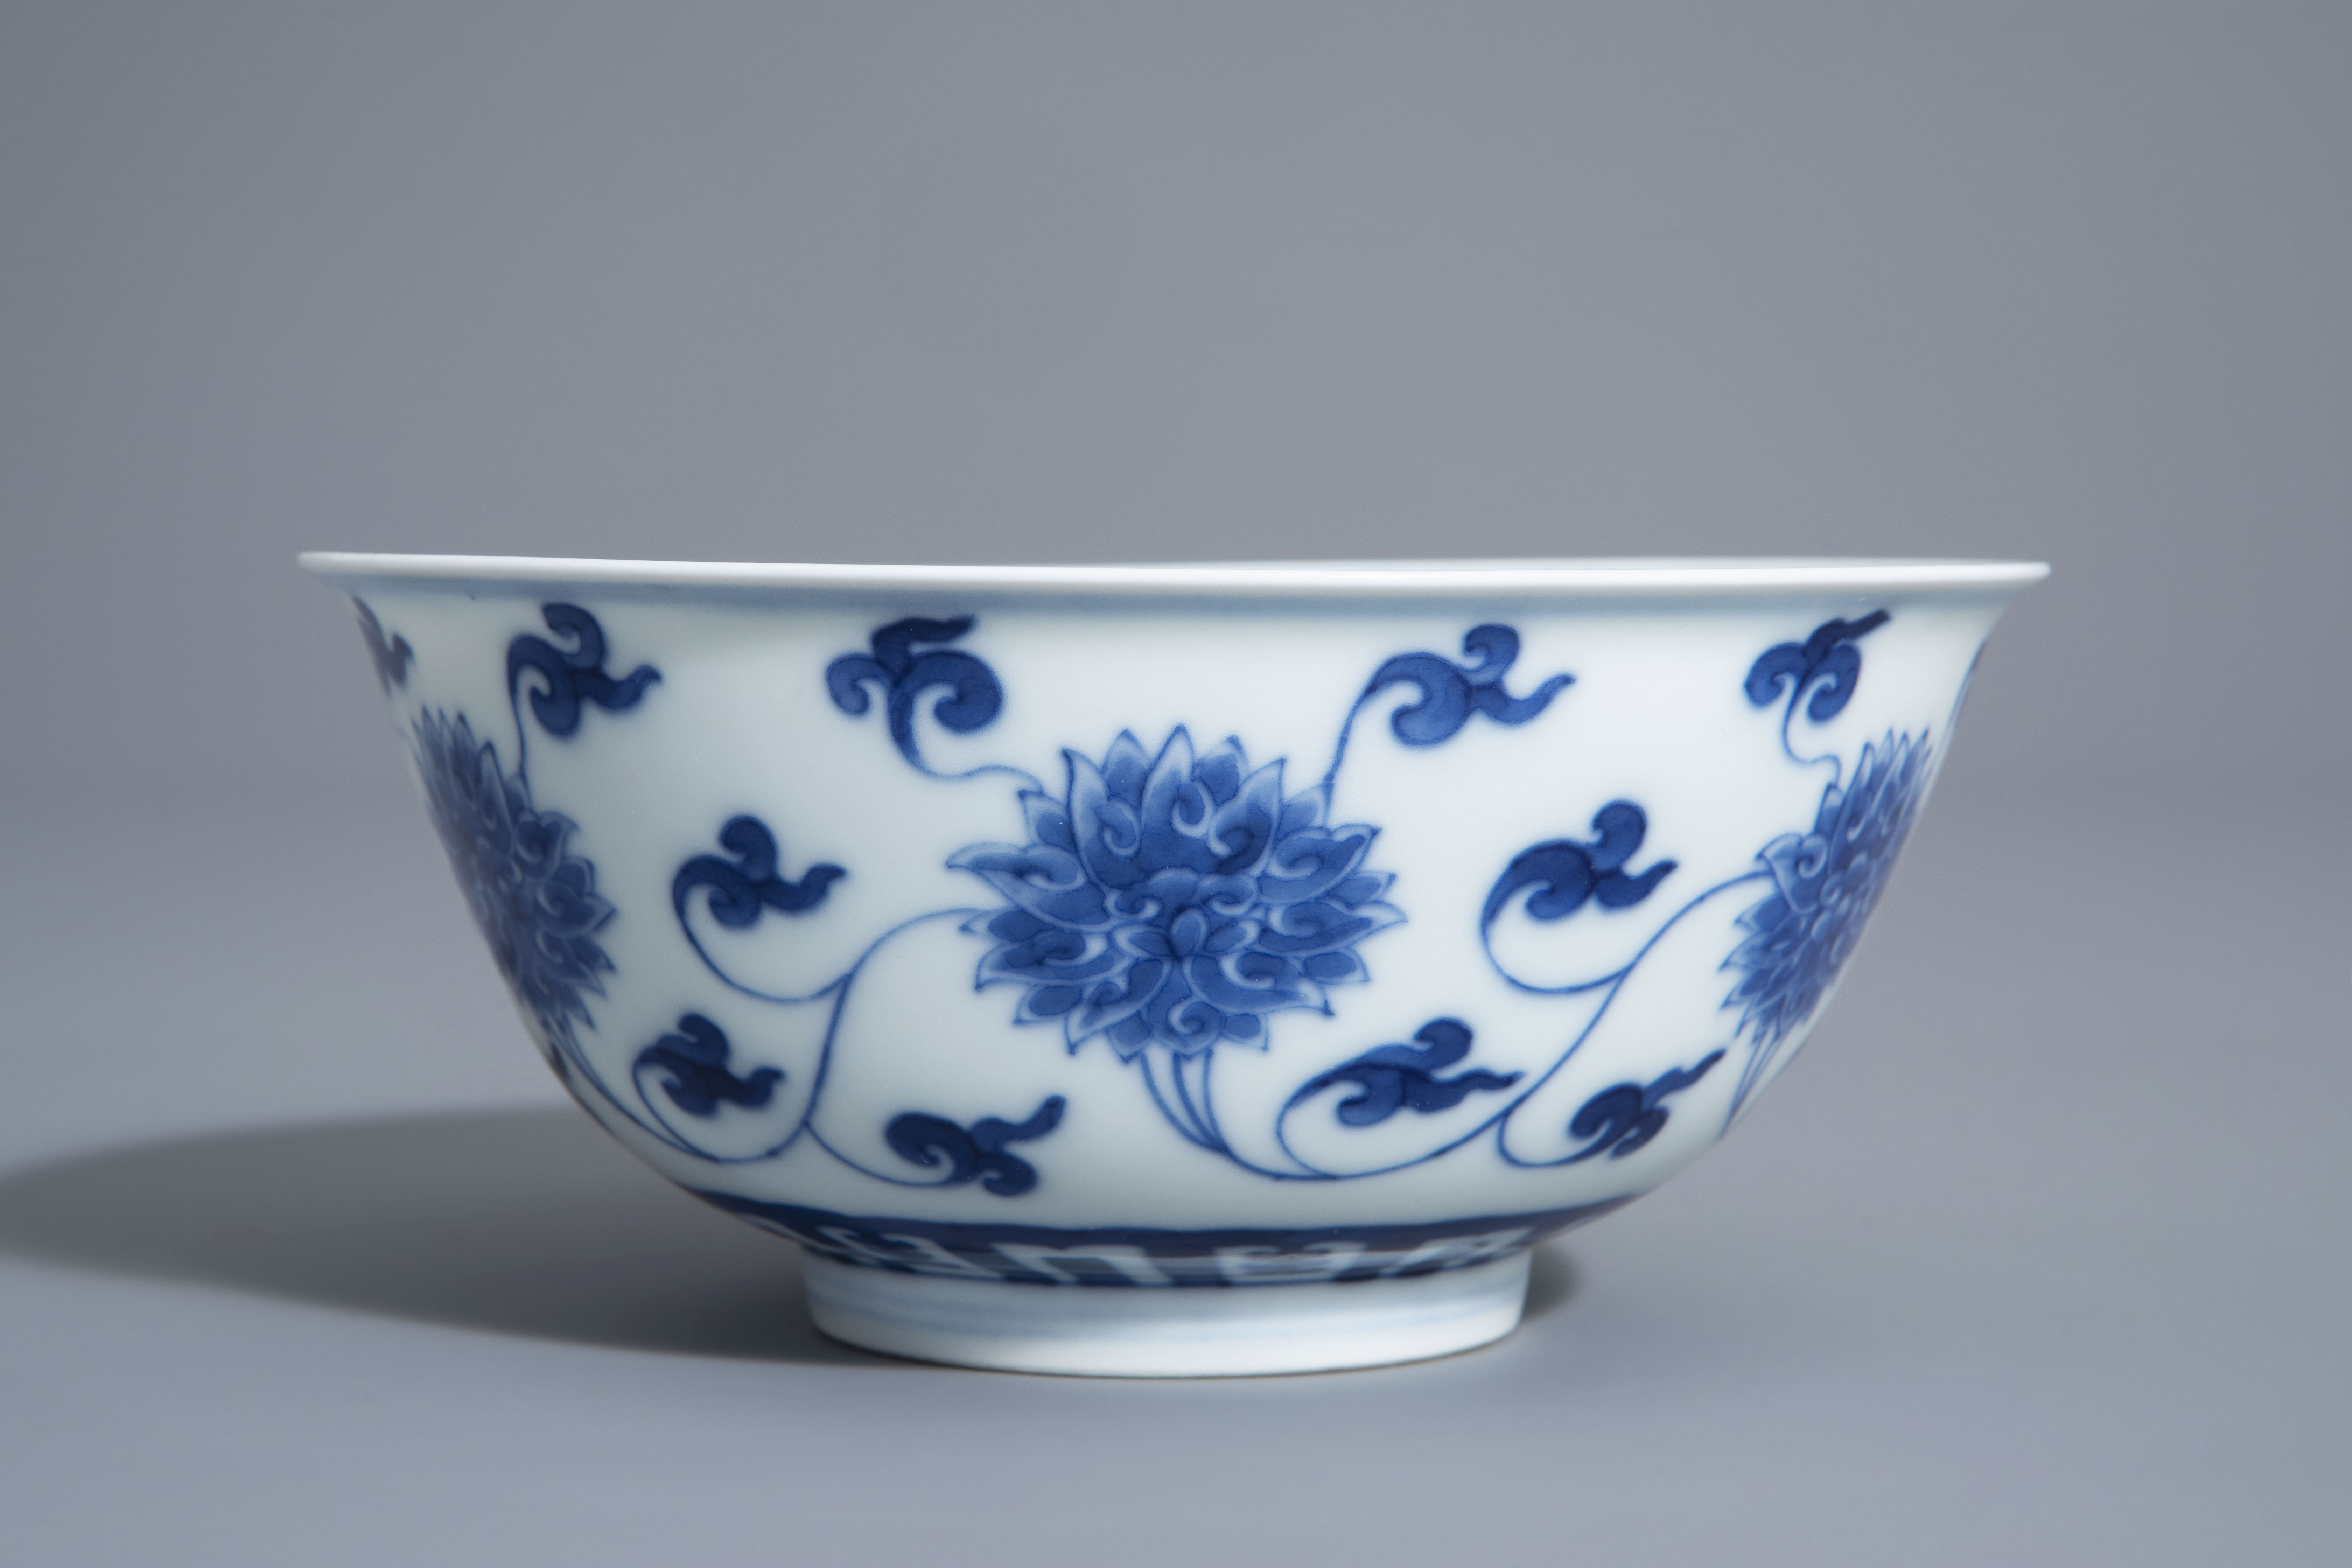 A Chinese blue and white 'lotus scroll' bowl, Kangxi mark, 19th/20th C. - Image 2 of 8